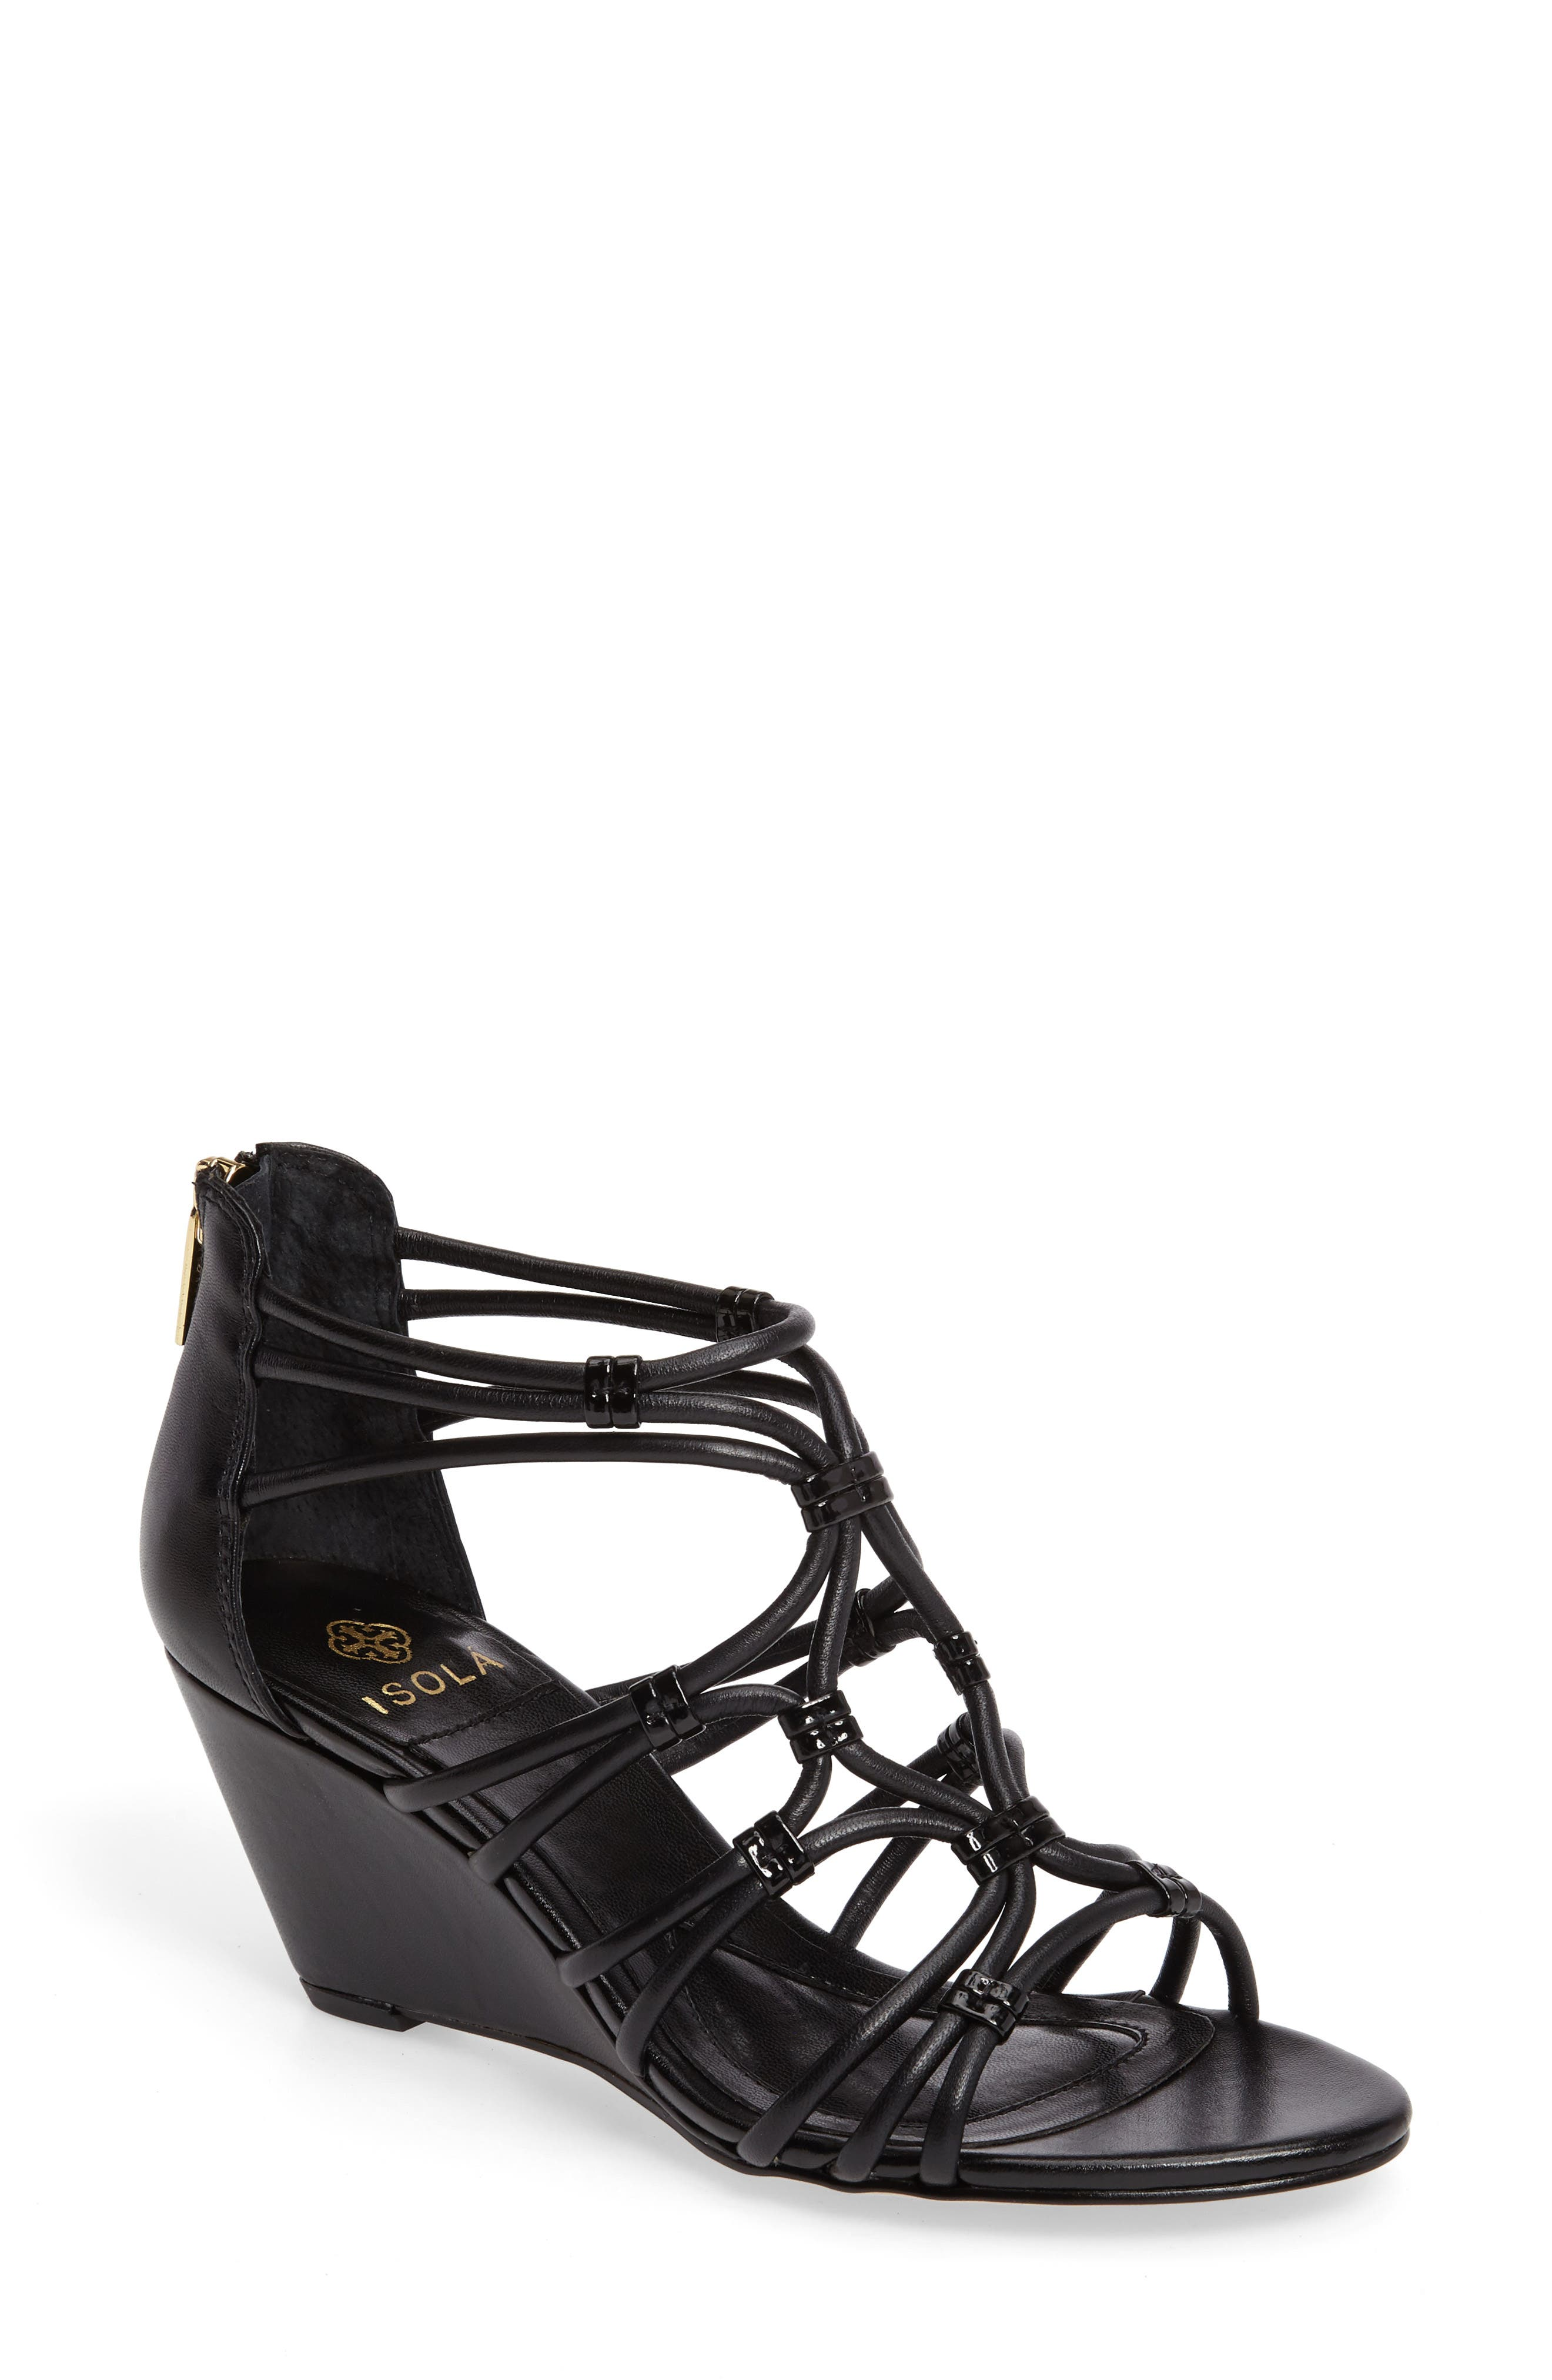 Floral Strappy Wedge Sandal,                         Main,                         color, 001